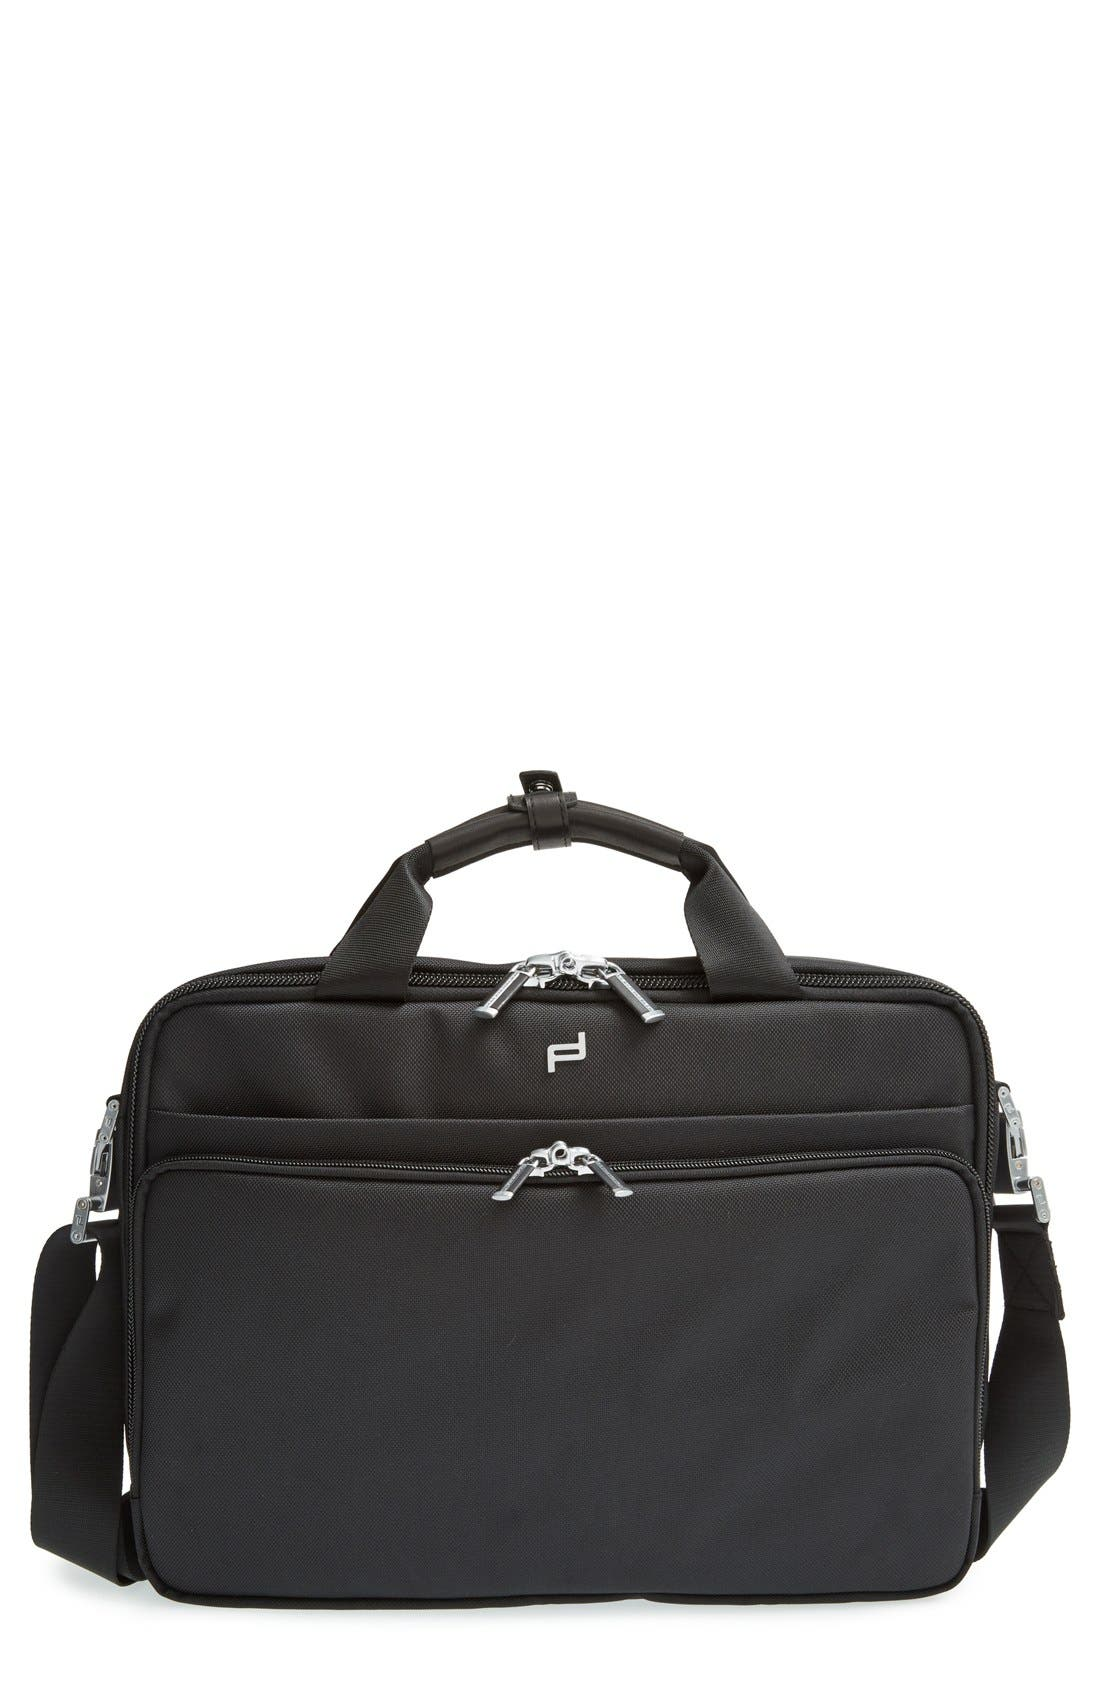 Roadster 3.0 Briefcase,                             Main thumbnail 1, color,                             001